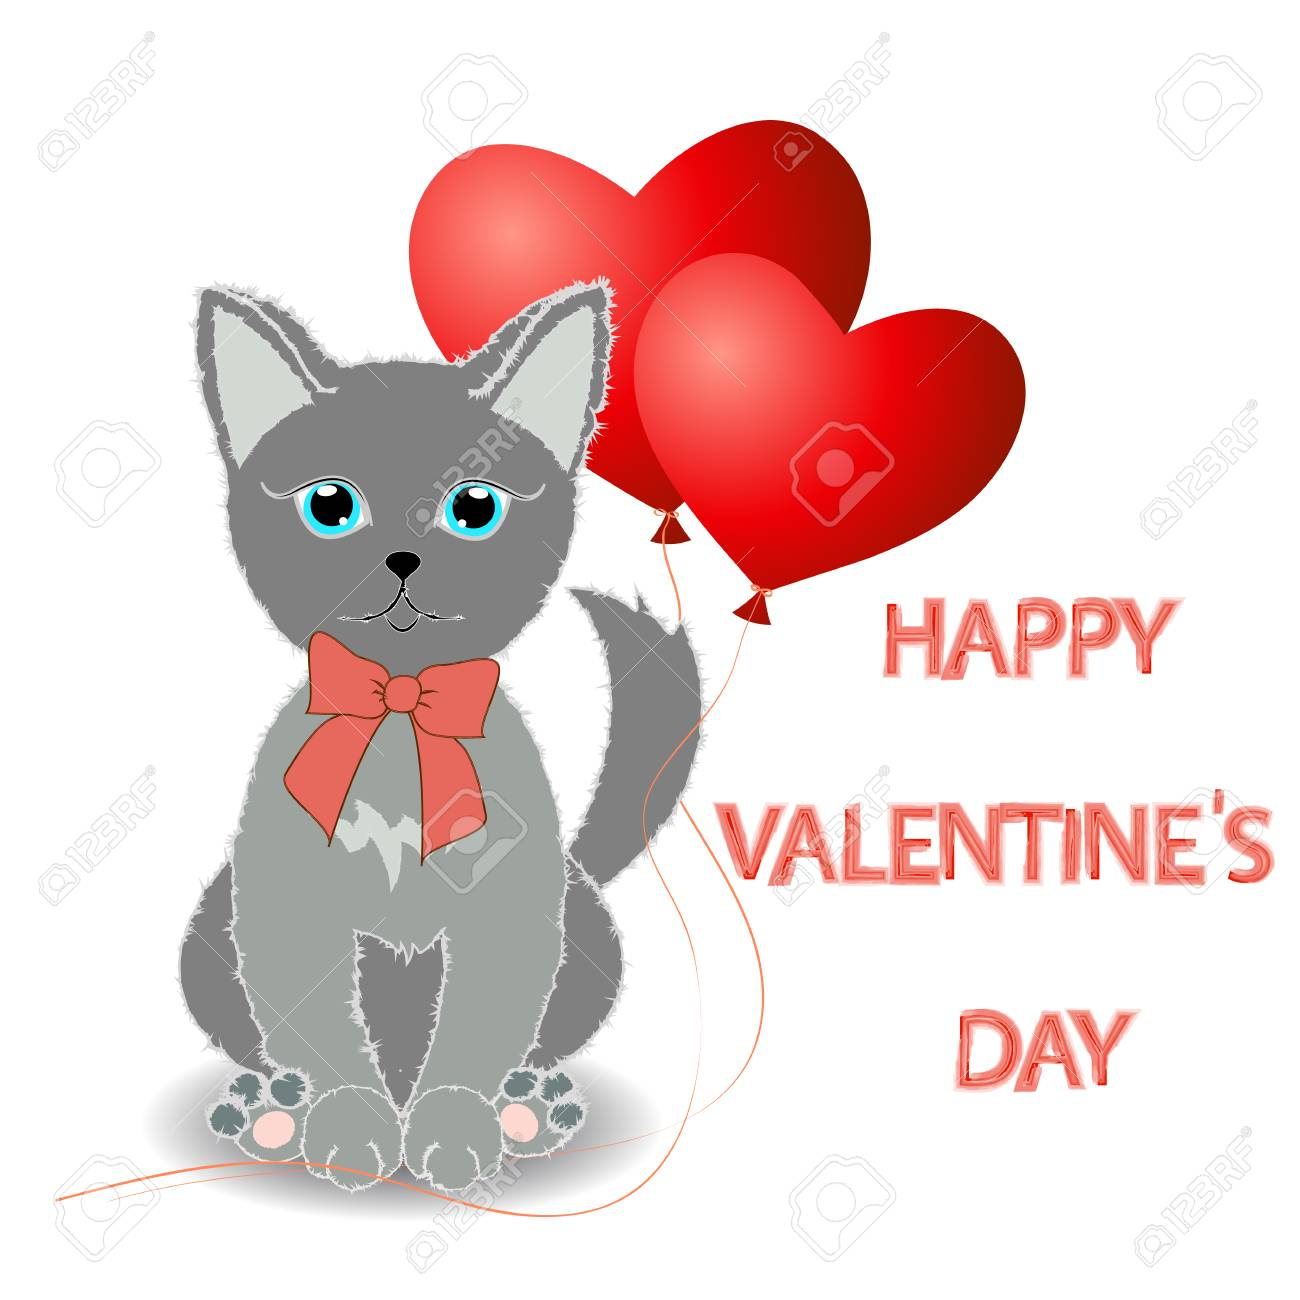 Cute Kitten Wishes Happy Valentine S Day Two Red Balloon In